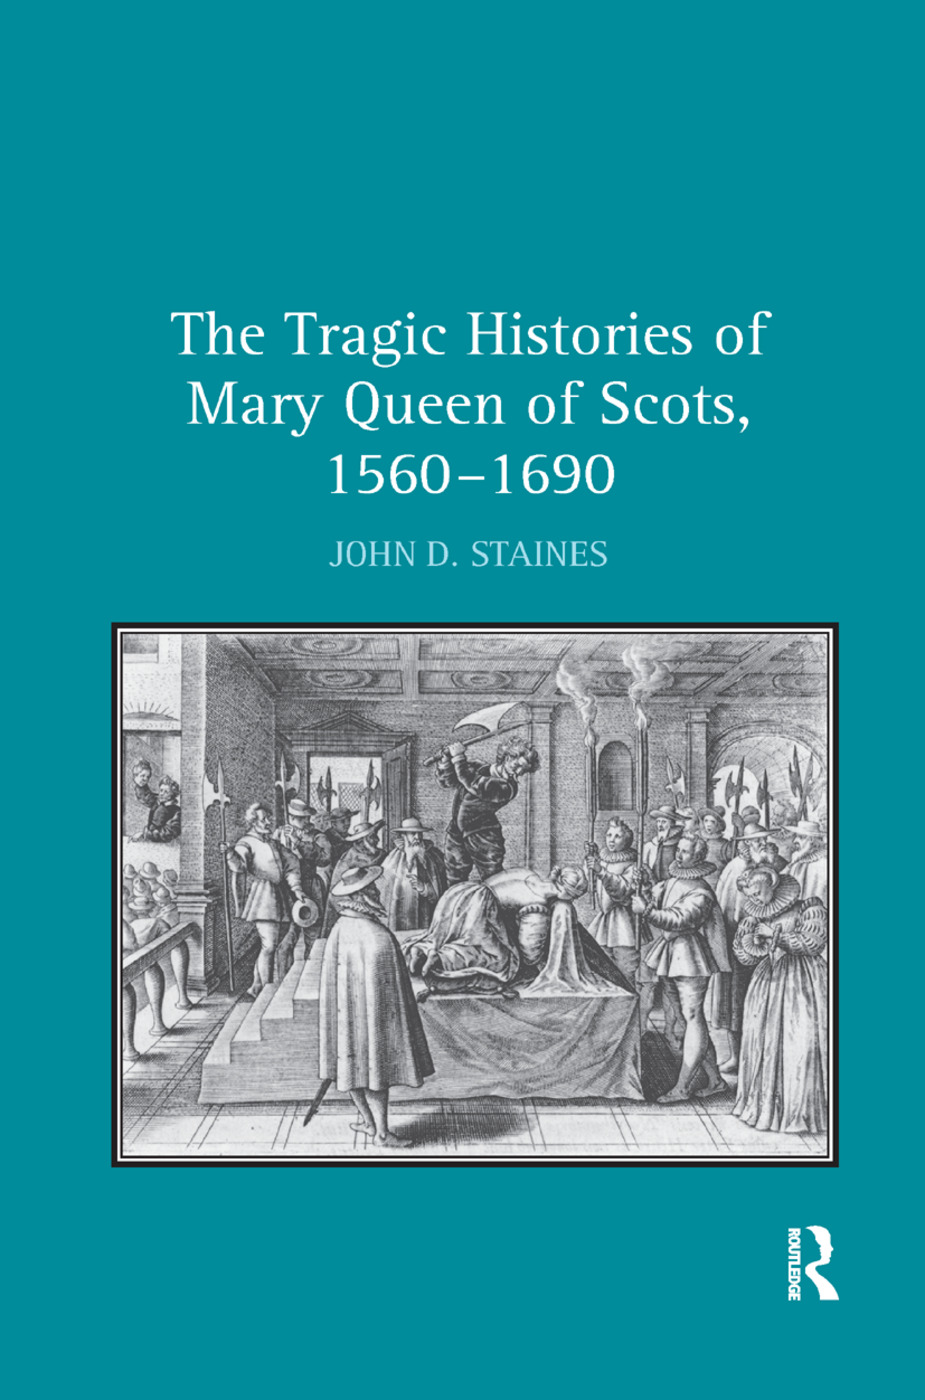 The Tragic Histories of Mary Queen of Scots, 1560-1690: Rhetoric, Passions and Political Literature book cover